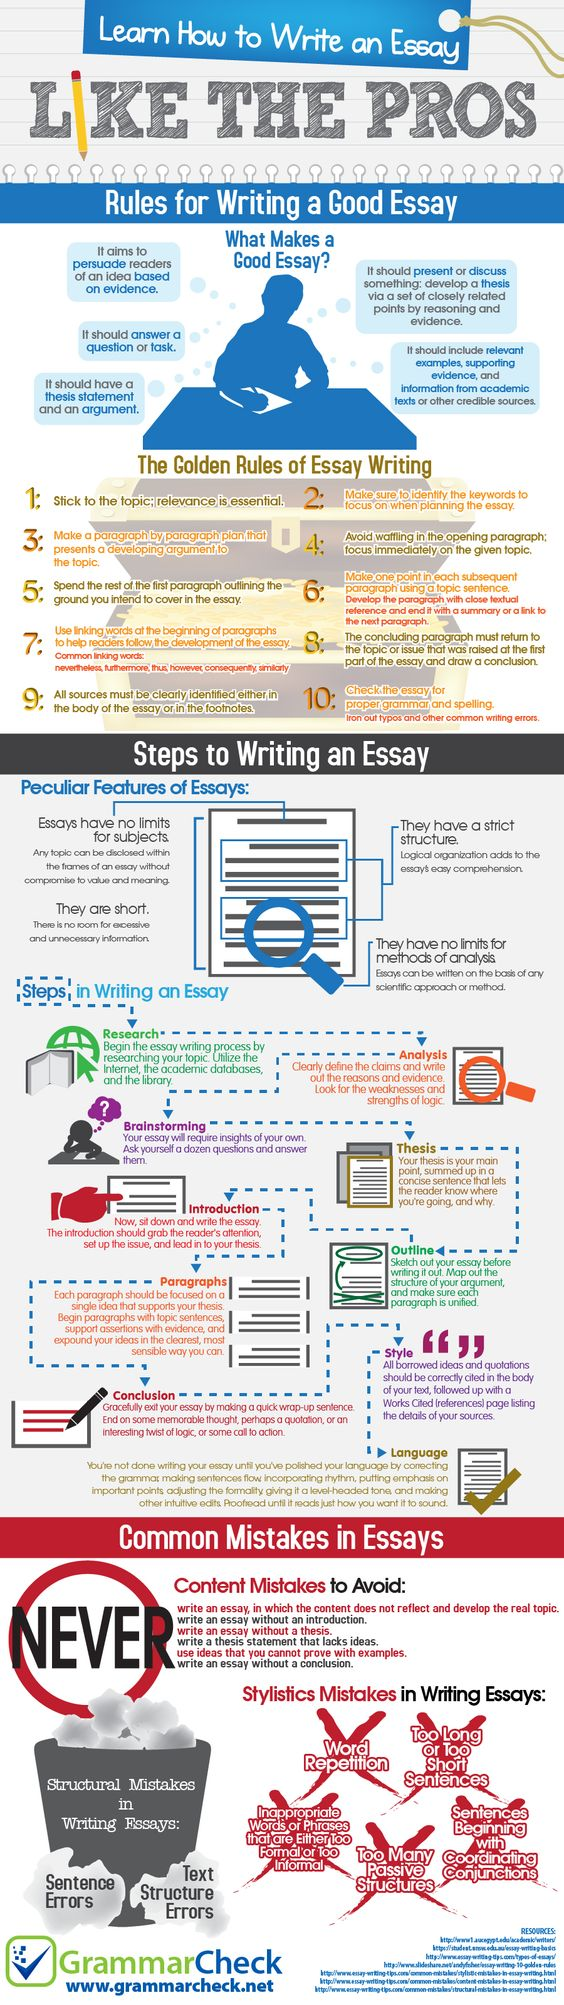 How do i publish an essay?